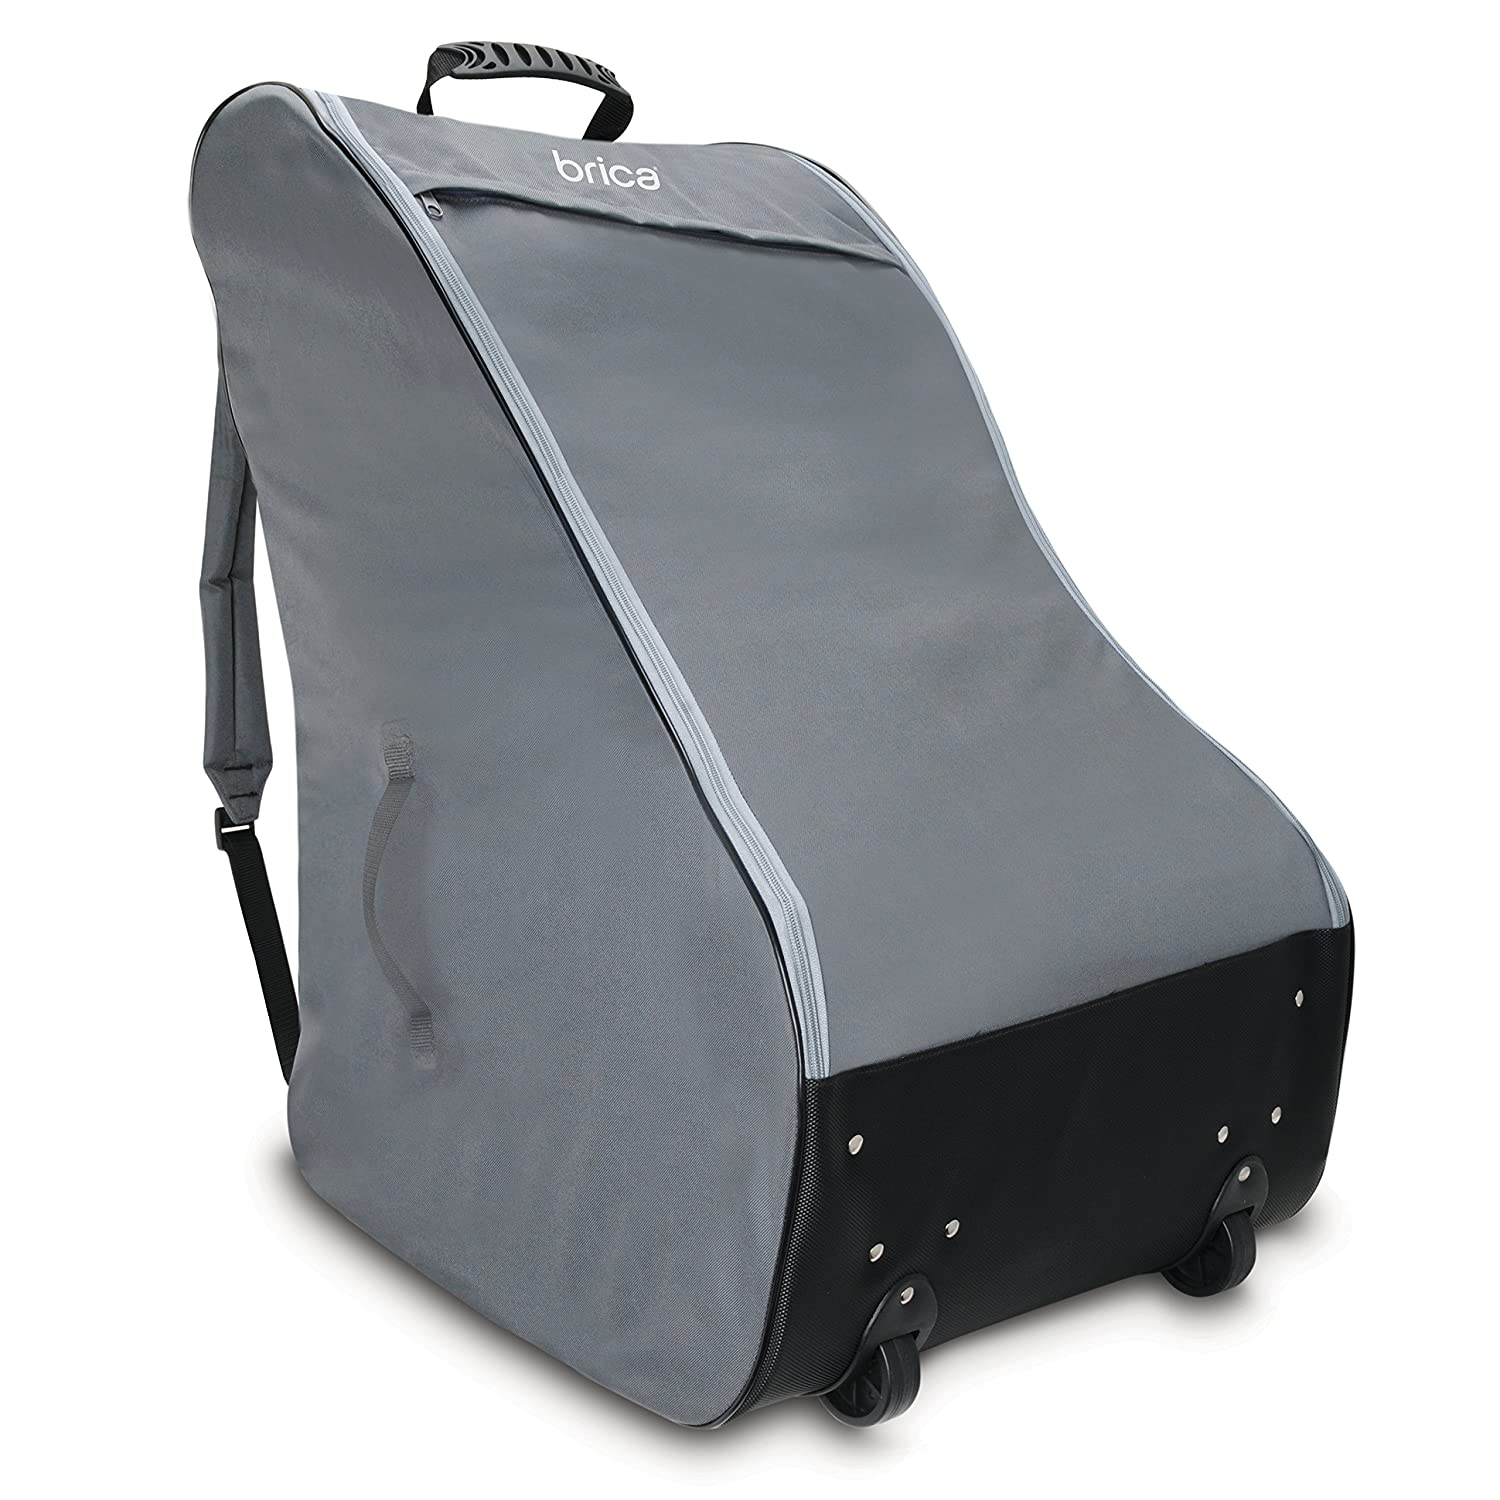 Astonishing Munchkin Brica Cover Guard Car Seat Travel Bag Grey Alphanode Cool Chair Designs And Ideas Alphanodeonline